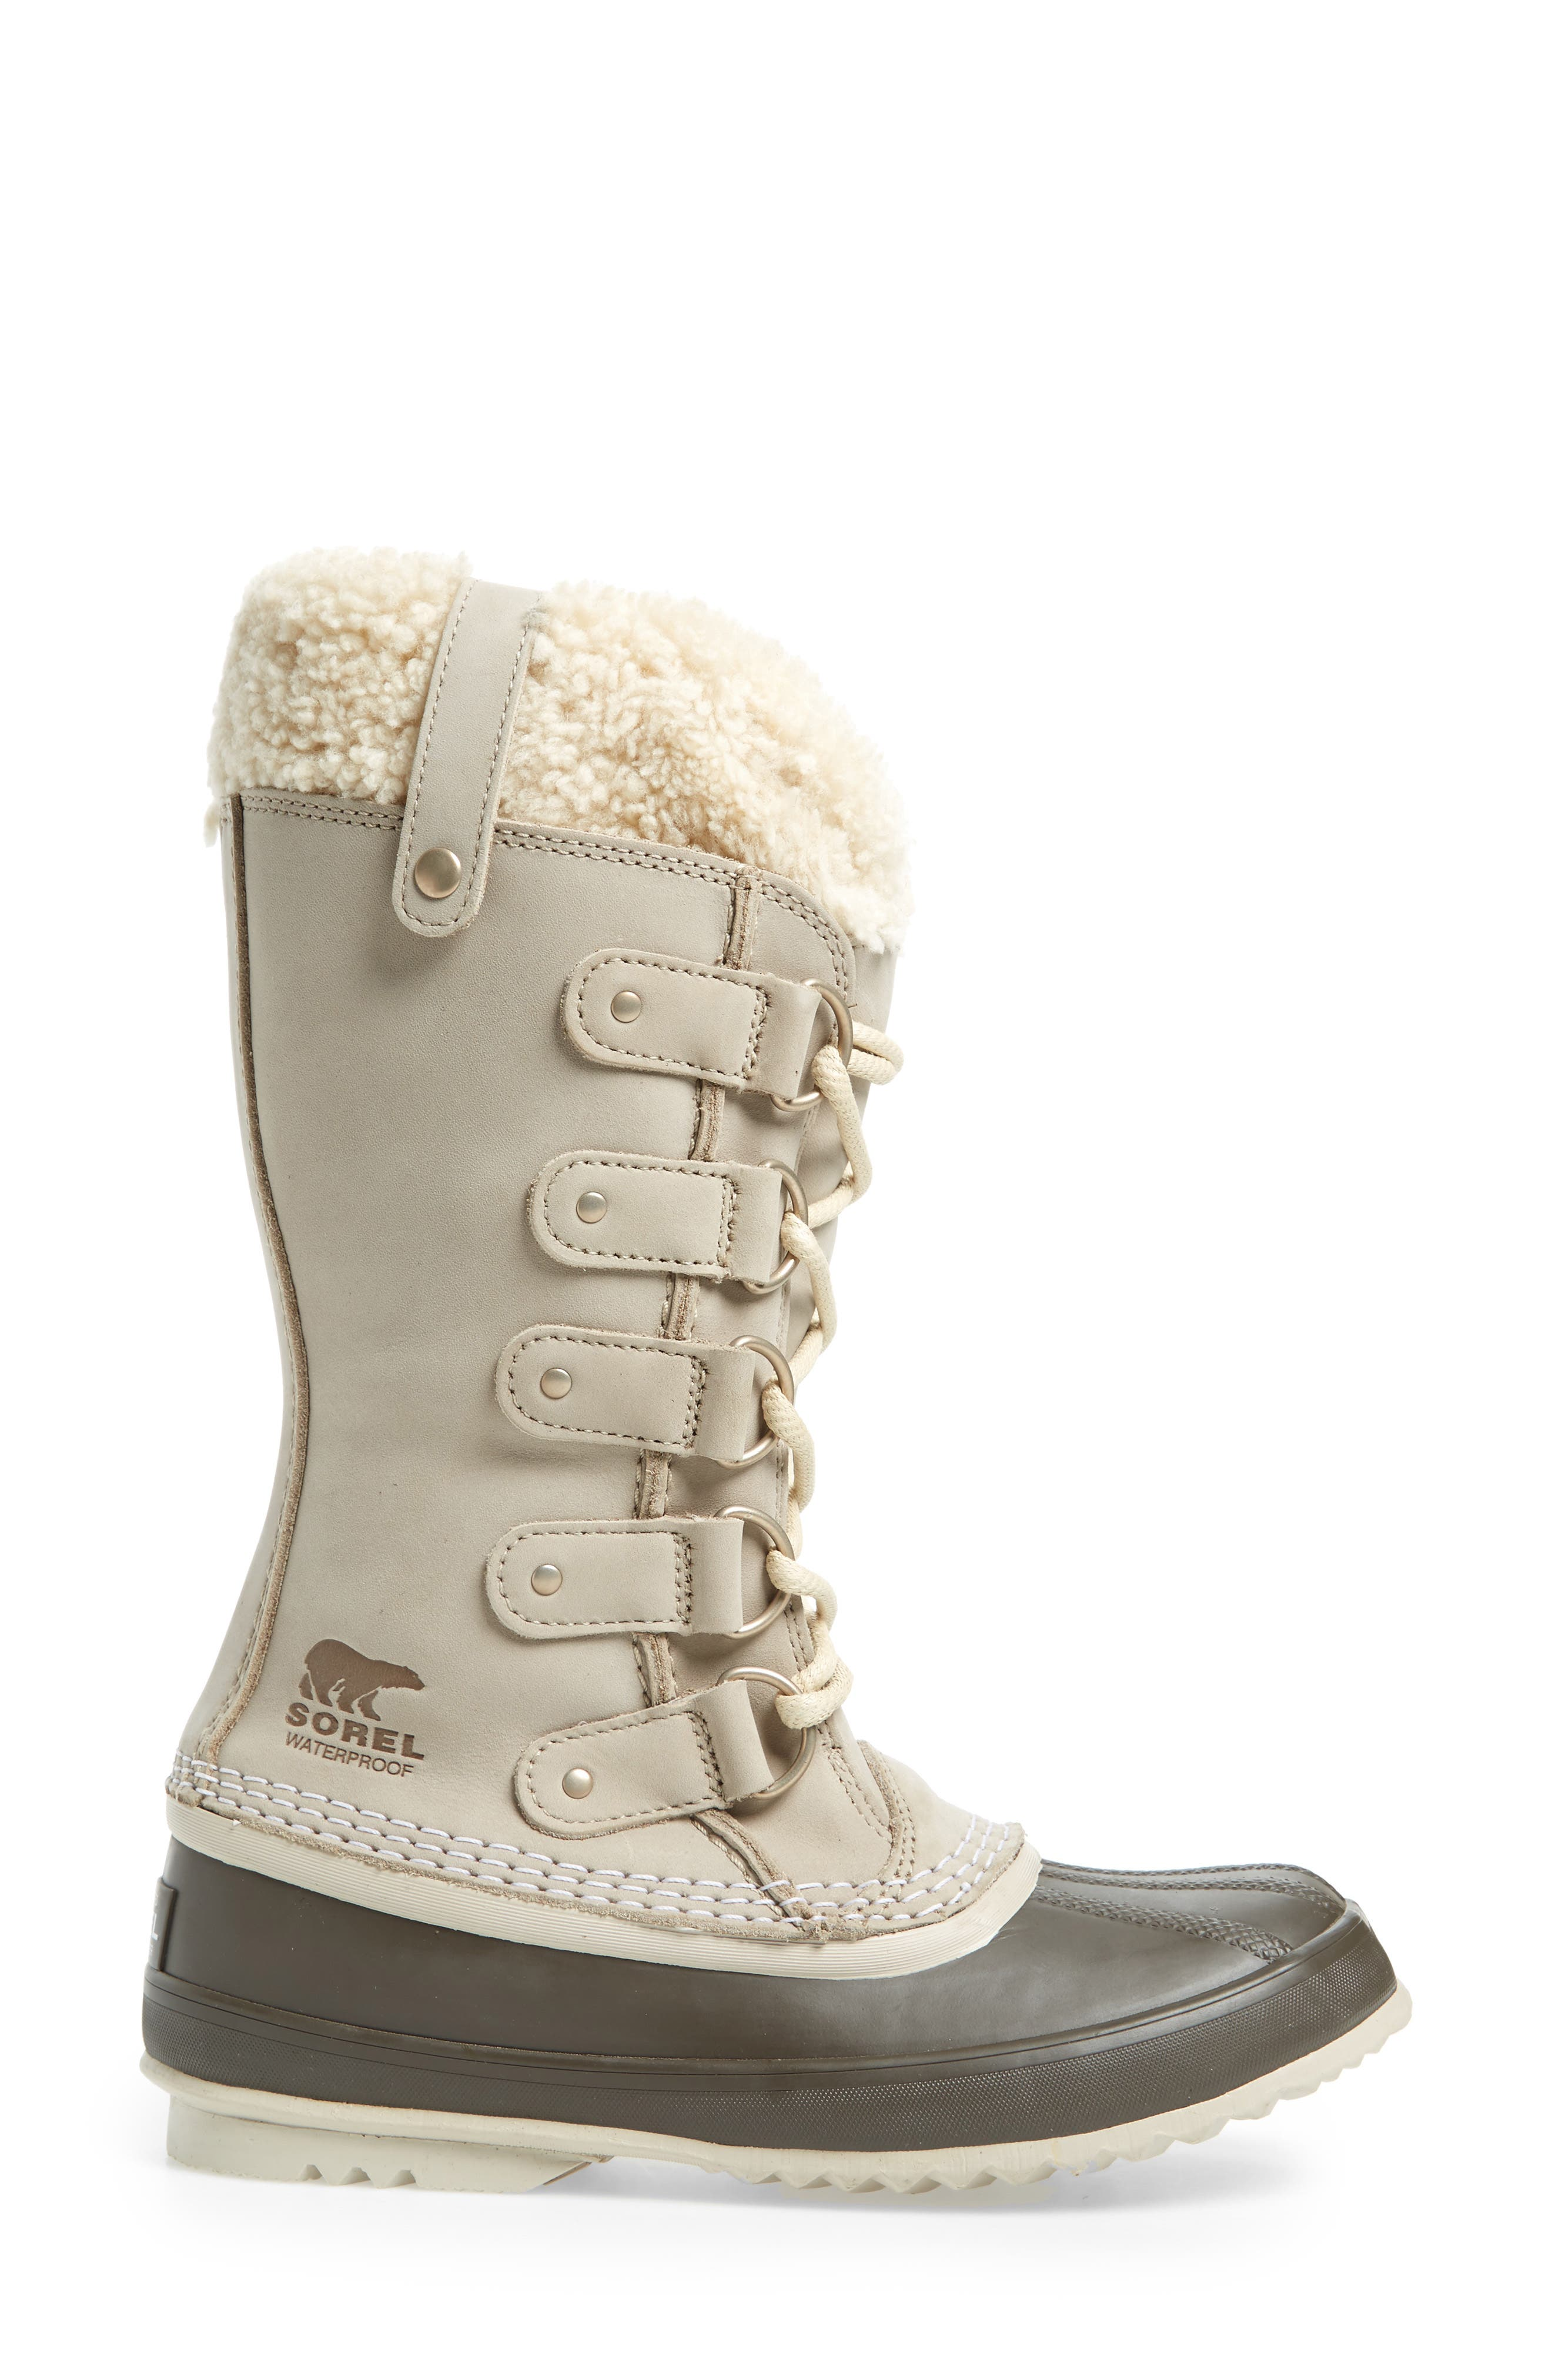 Joan of Arctic<sup>™</sup> Lux Waterproof Winter Boot with Genuine  Shearling Cuff,                             Alternate thumbnail 3, color,                             271